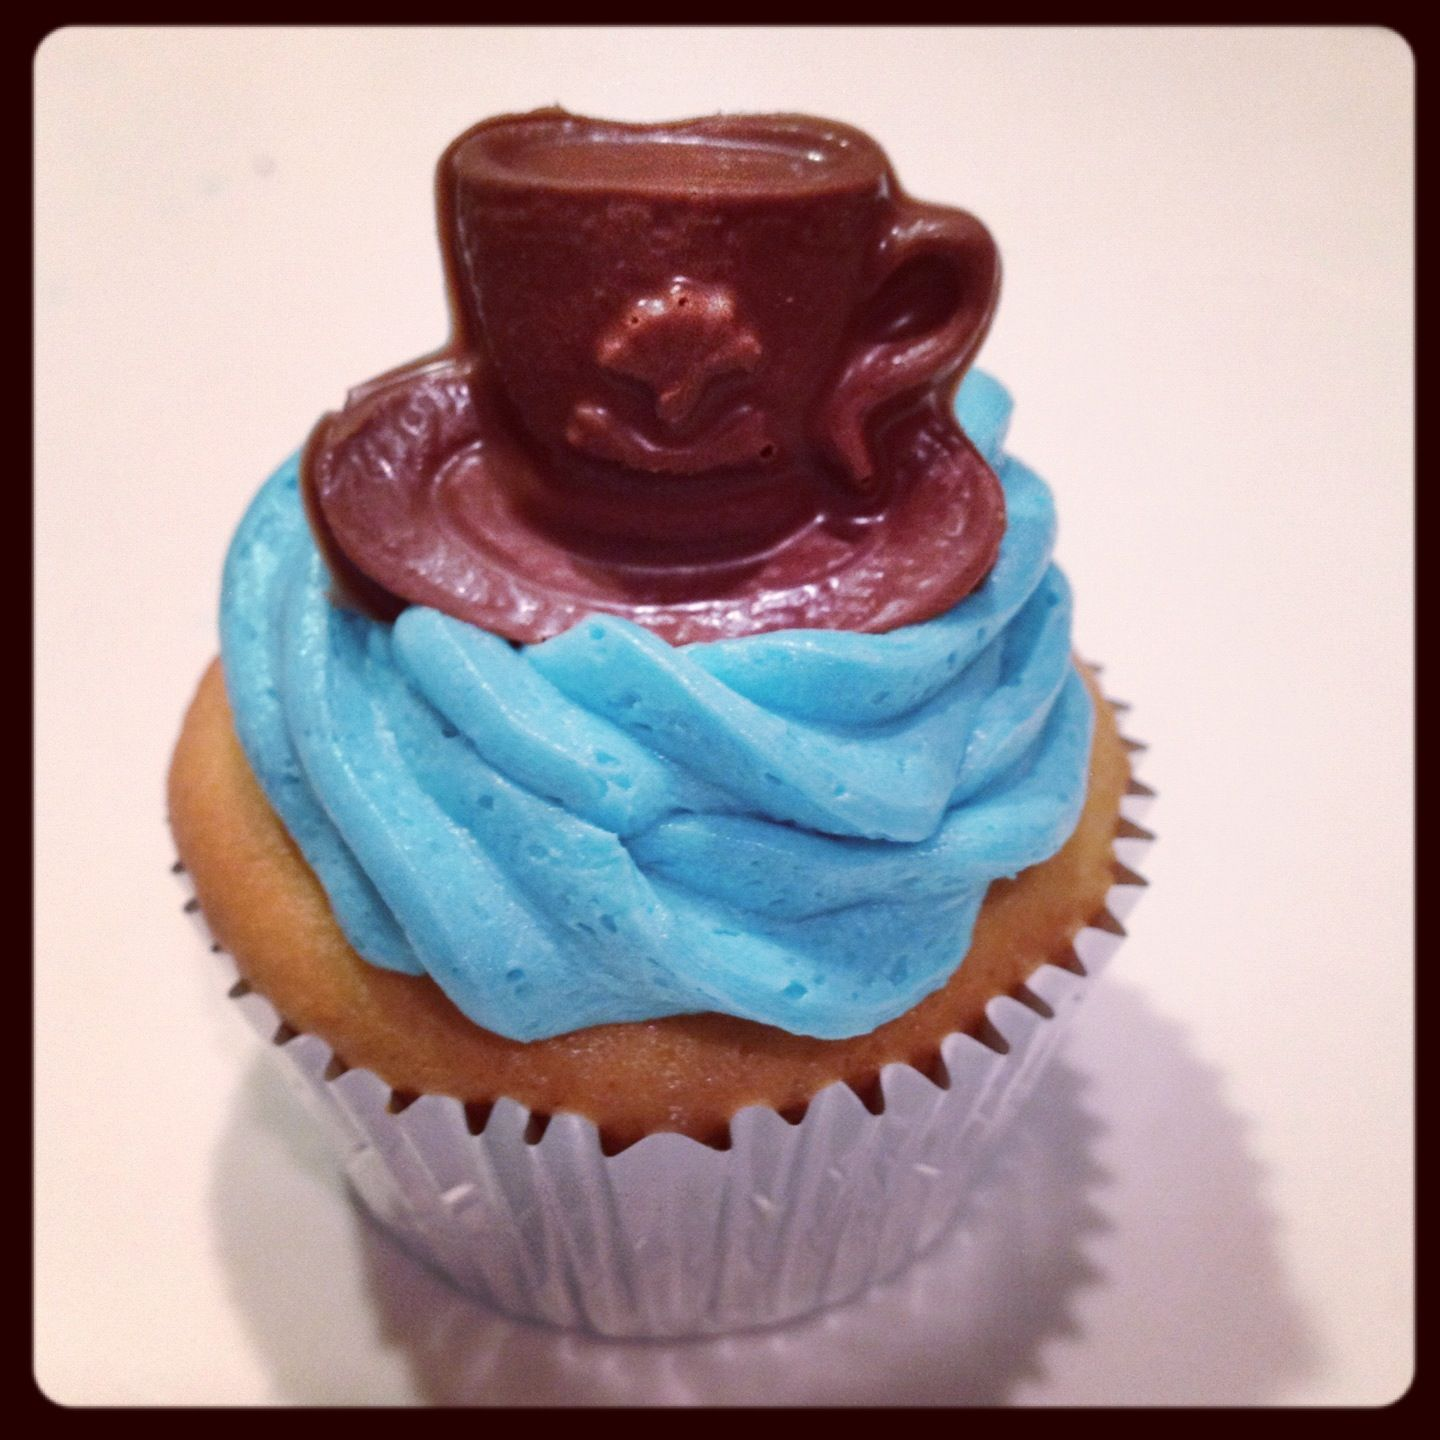 Tea party cupcakes with chocolate teacups!